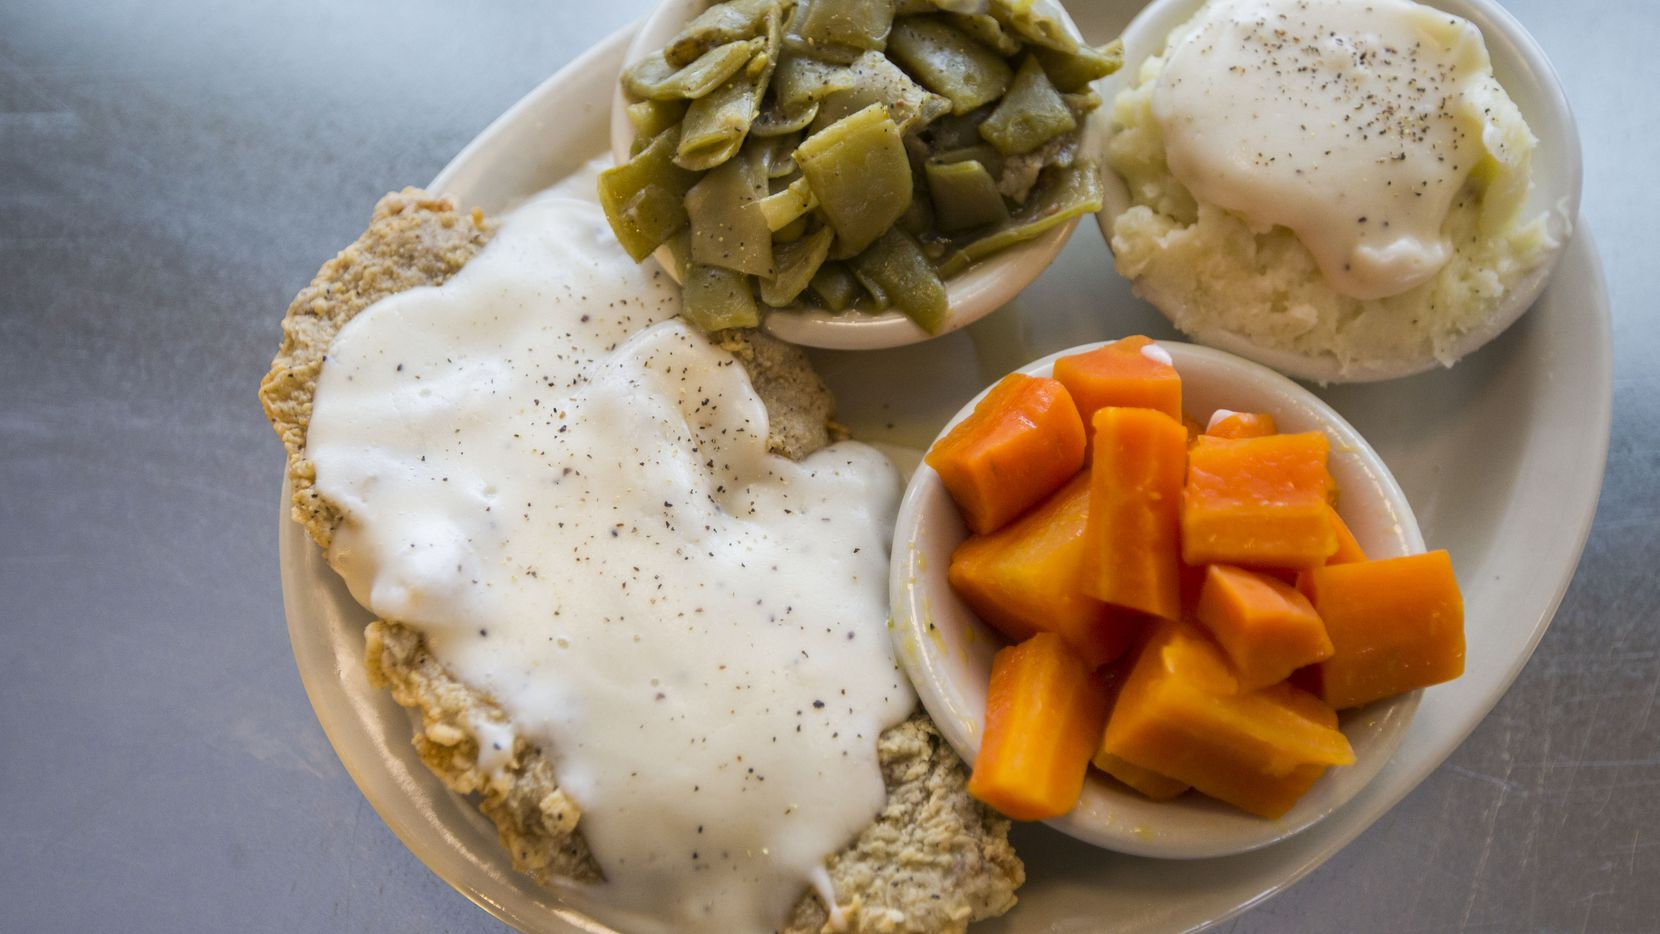 A plate of chicken fried steak, carrots, green beens, and mashed potatoes will be available for $1.79 at Norma's Cafe on June 23.